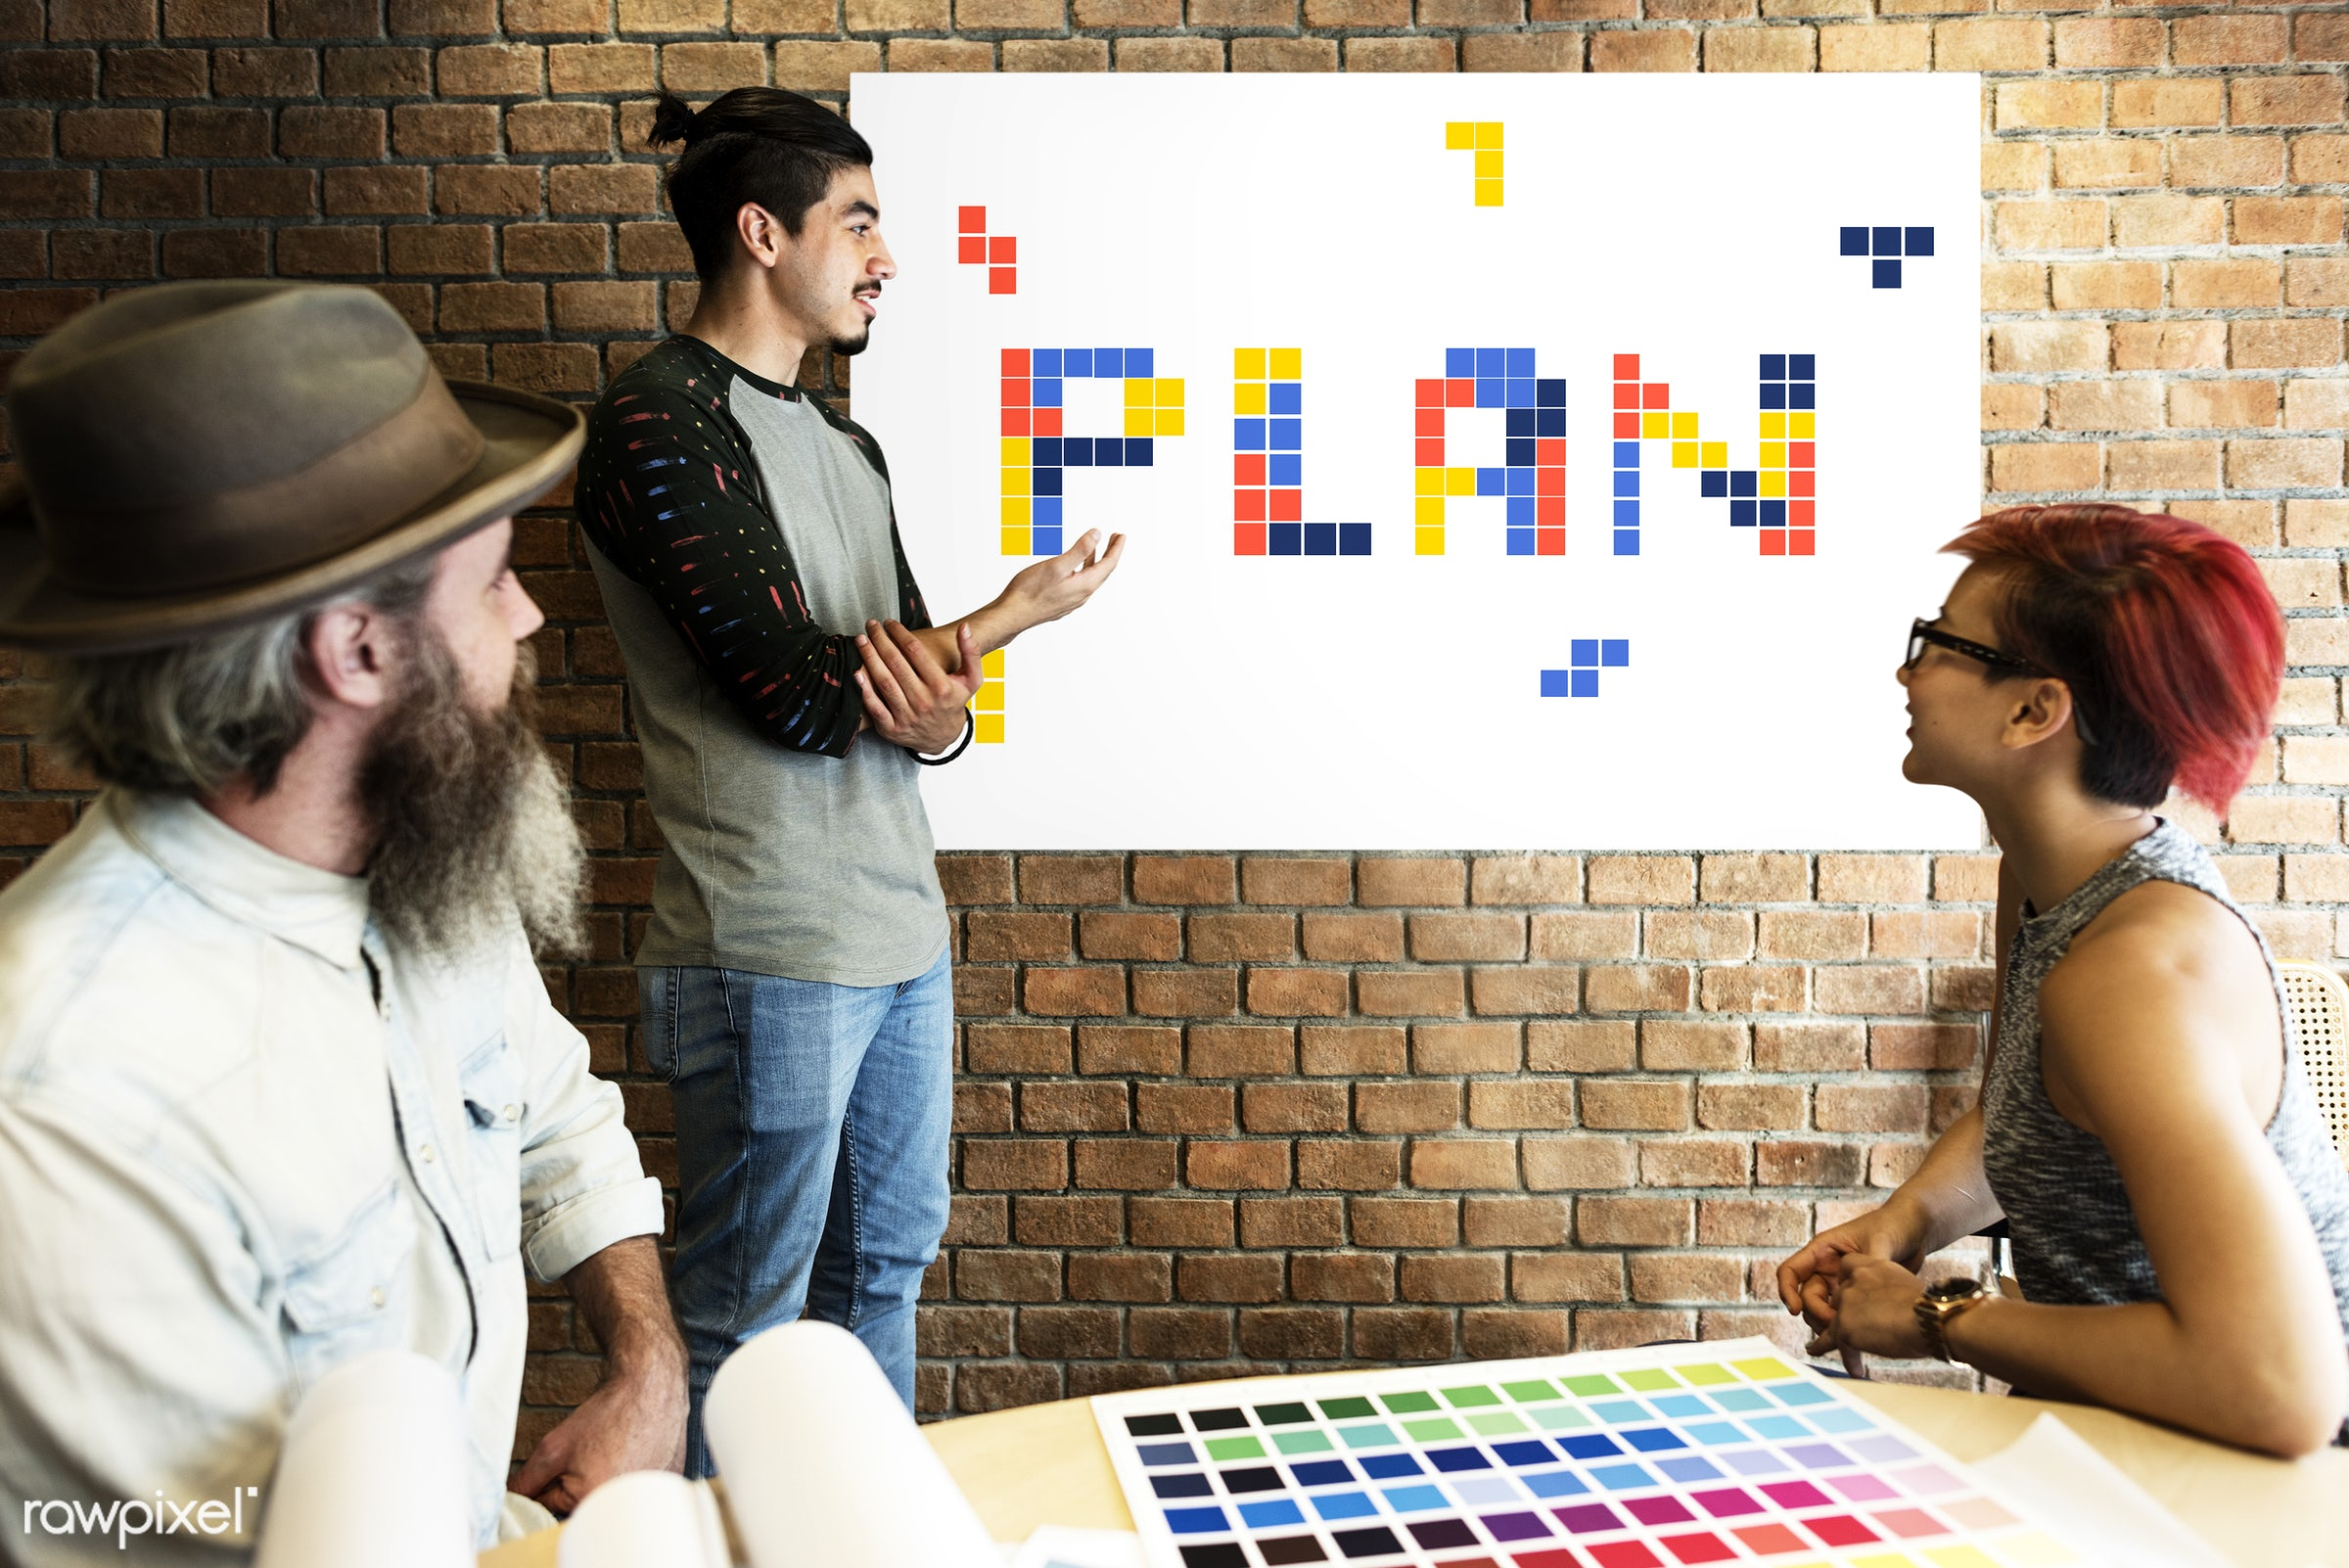 8 bit, art, beard, block, board, brainstorm, brick wall, chart, color chart, colors, design, discussion, female, game,...